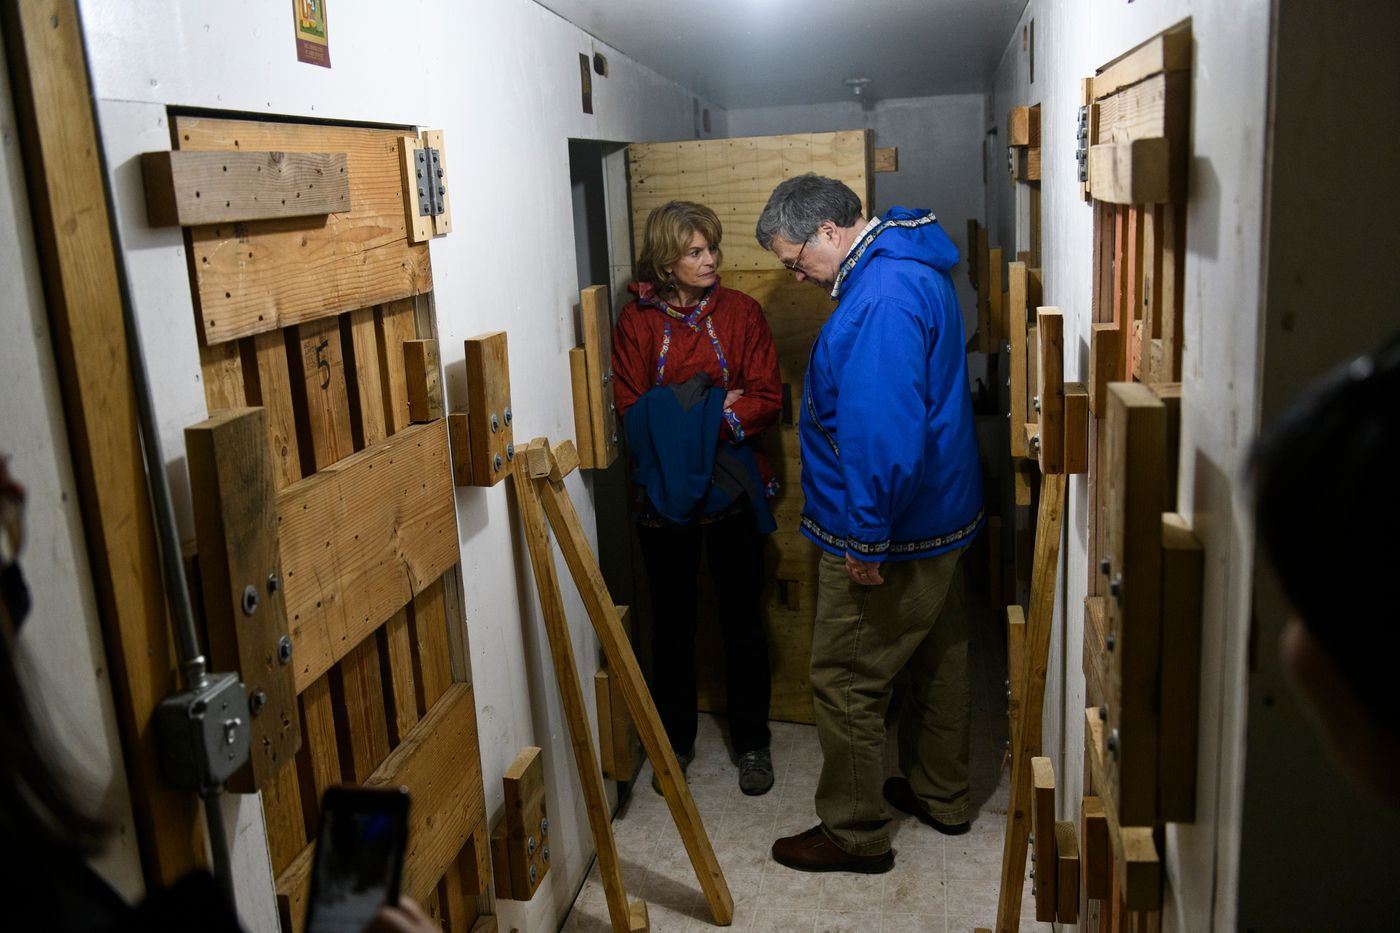 Sen. Lisa Murkowski and U.S. Attorney General William Barr tour holding cells inside the Napaskiak public safety building on May 31, 2019. (Marc Lester / ADN)